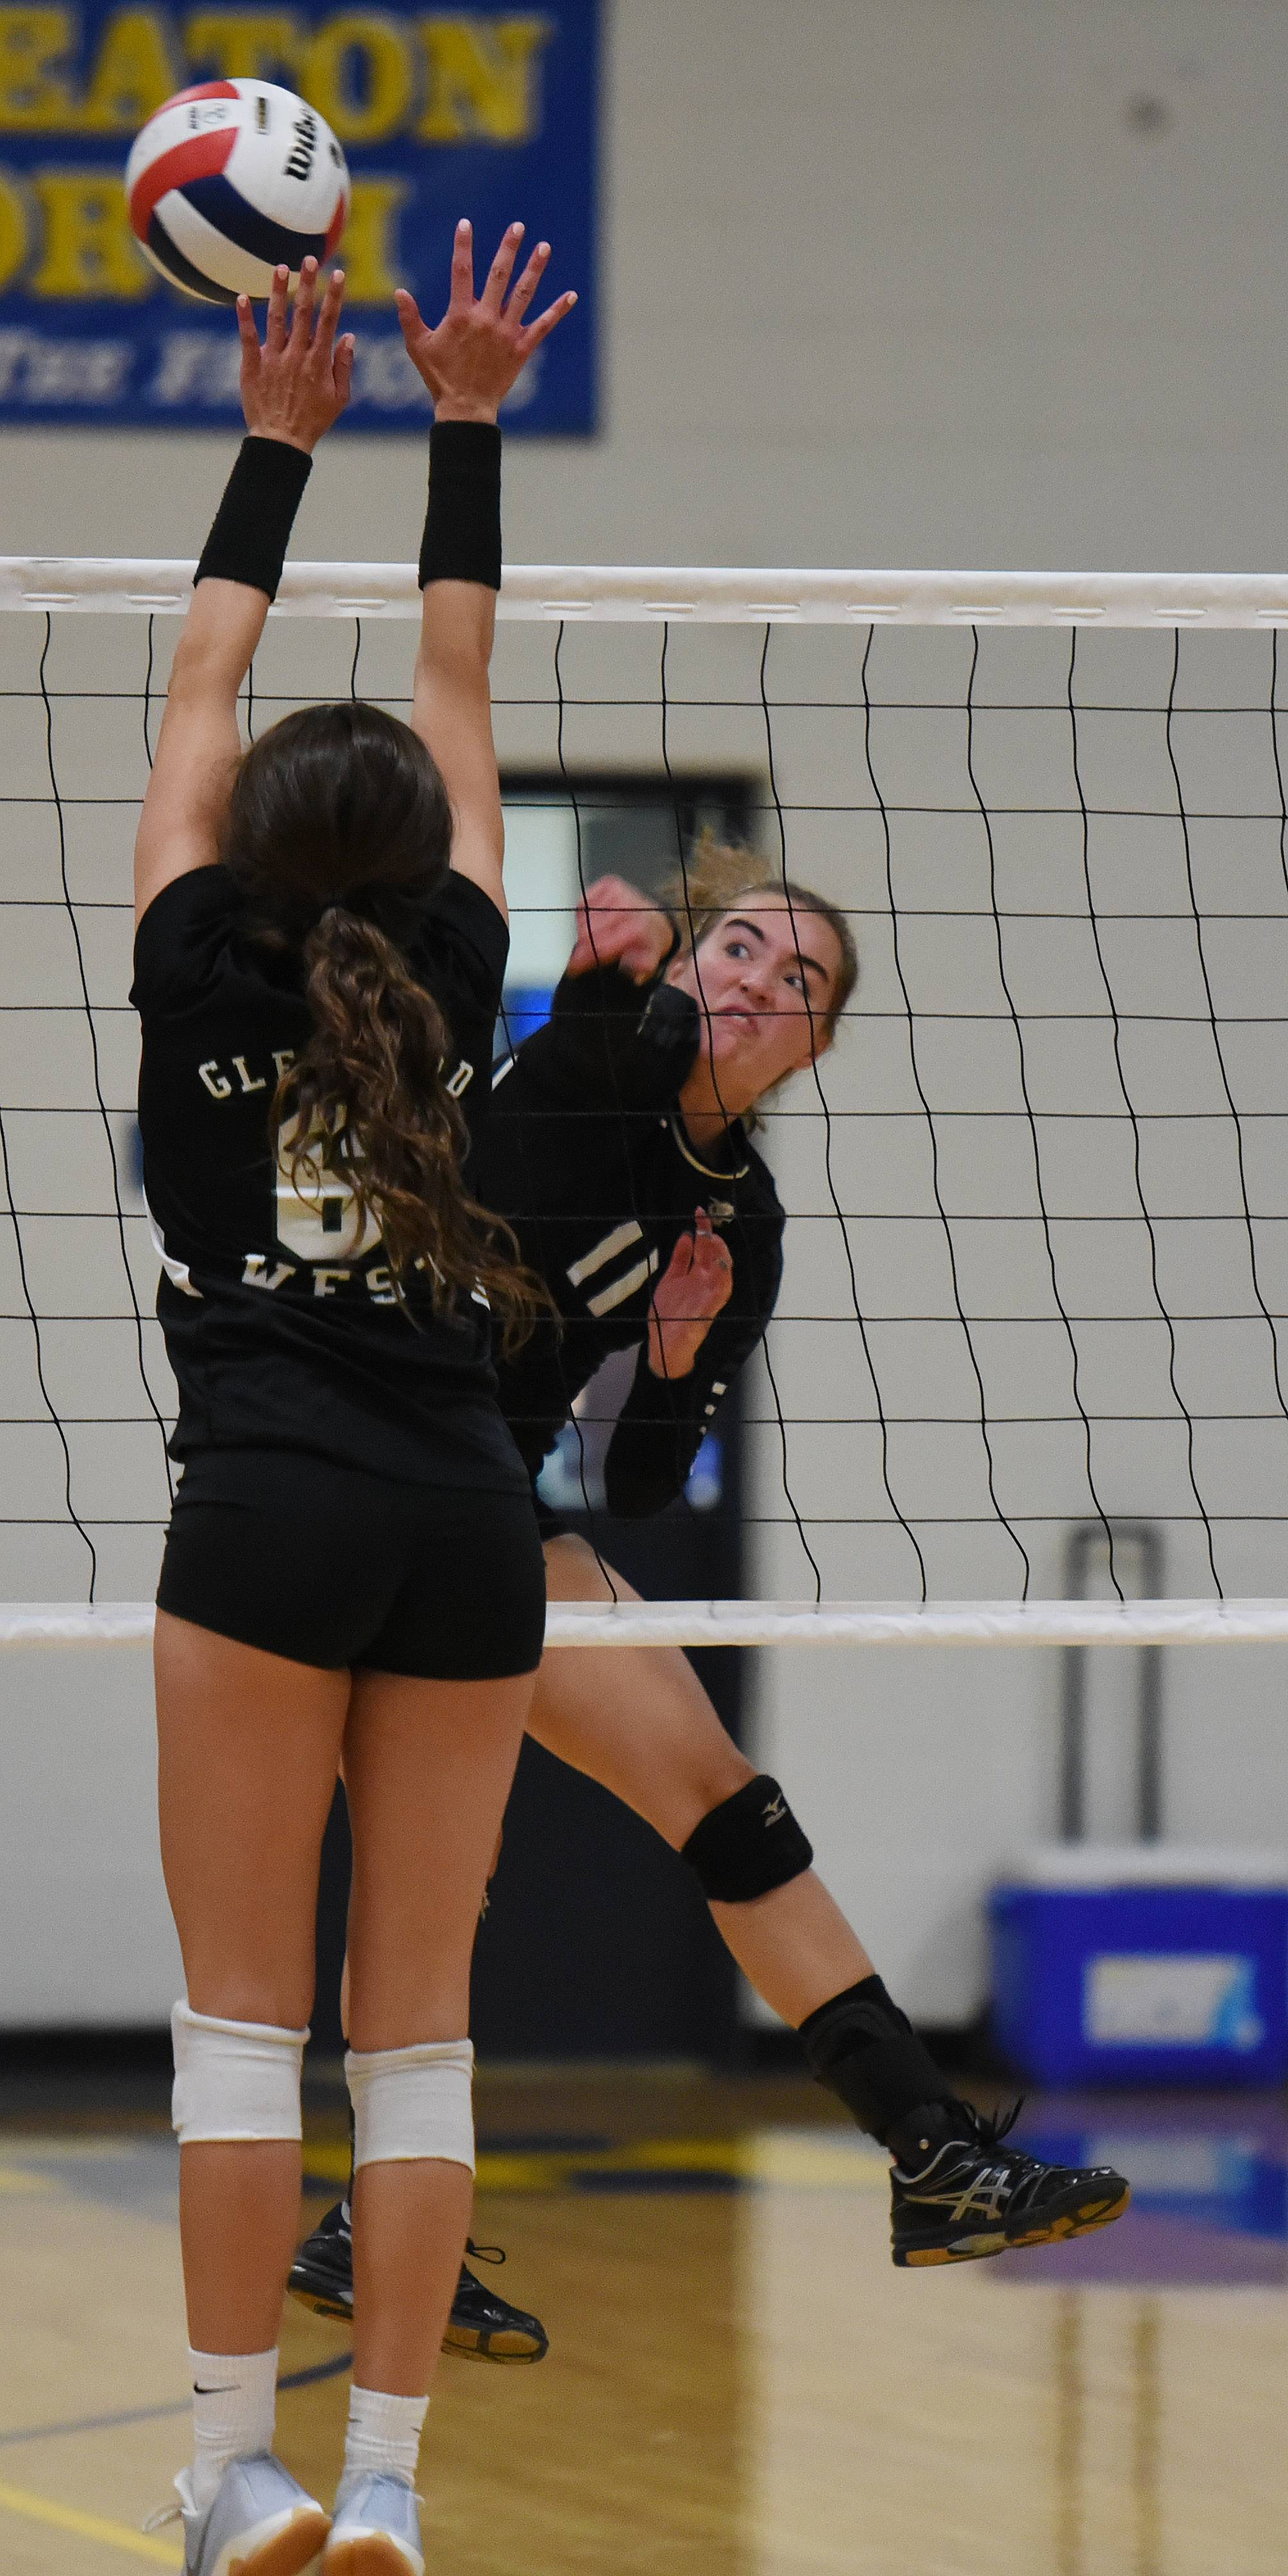 Paul Michna/pmichna@dailyherald.comHannah Brodner of Glenbard West attempts to block a shot from Jessica Weber of Kaneland during game acton Saturday at Wheaton North.